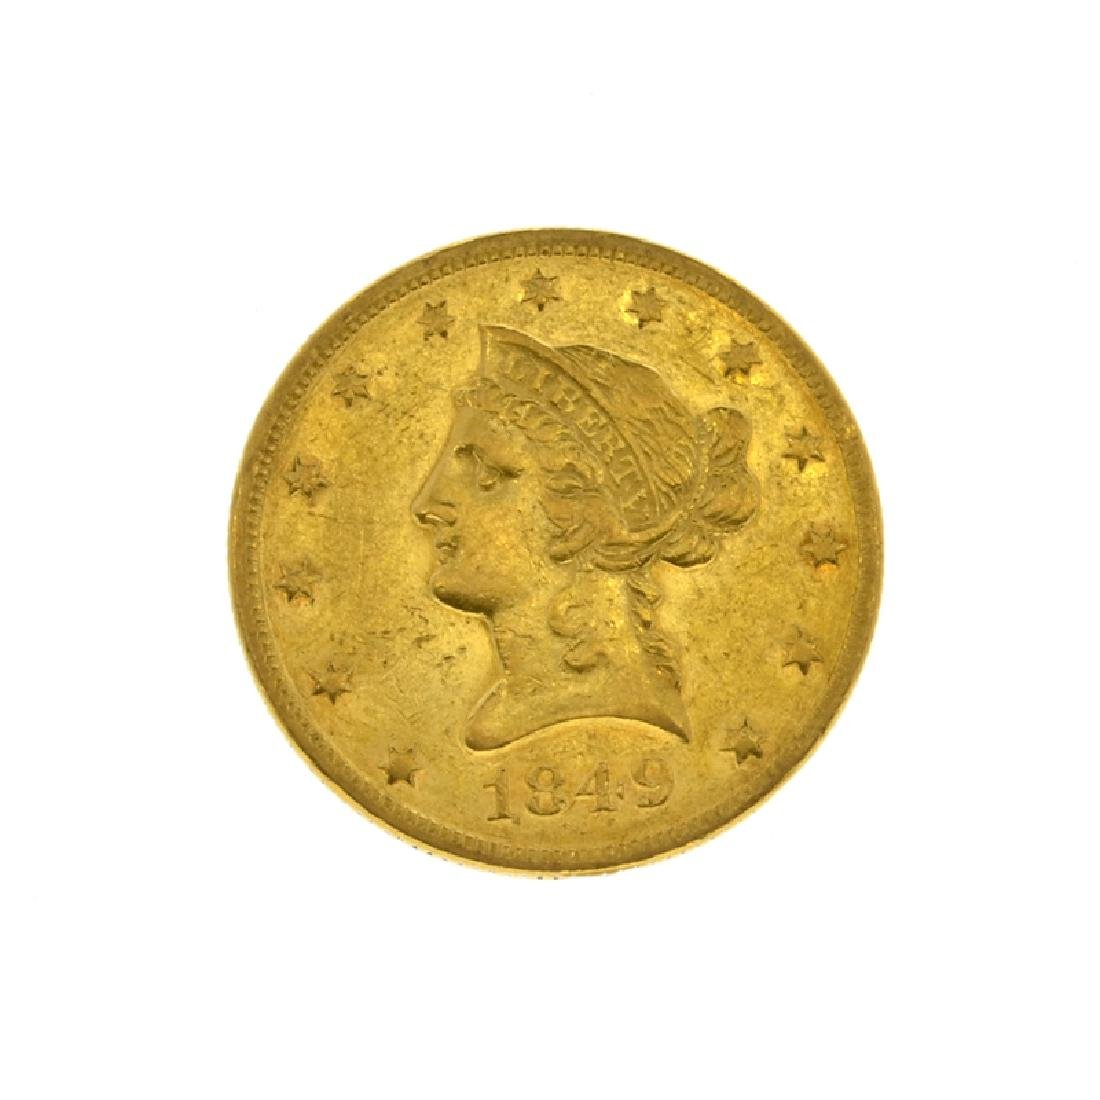 1849 $10 U.S. Liberty Head Gold Coin